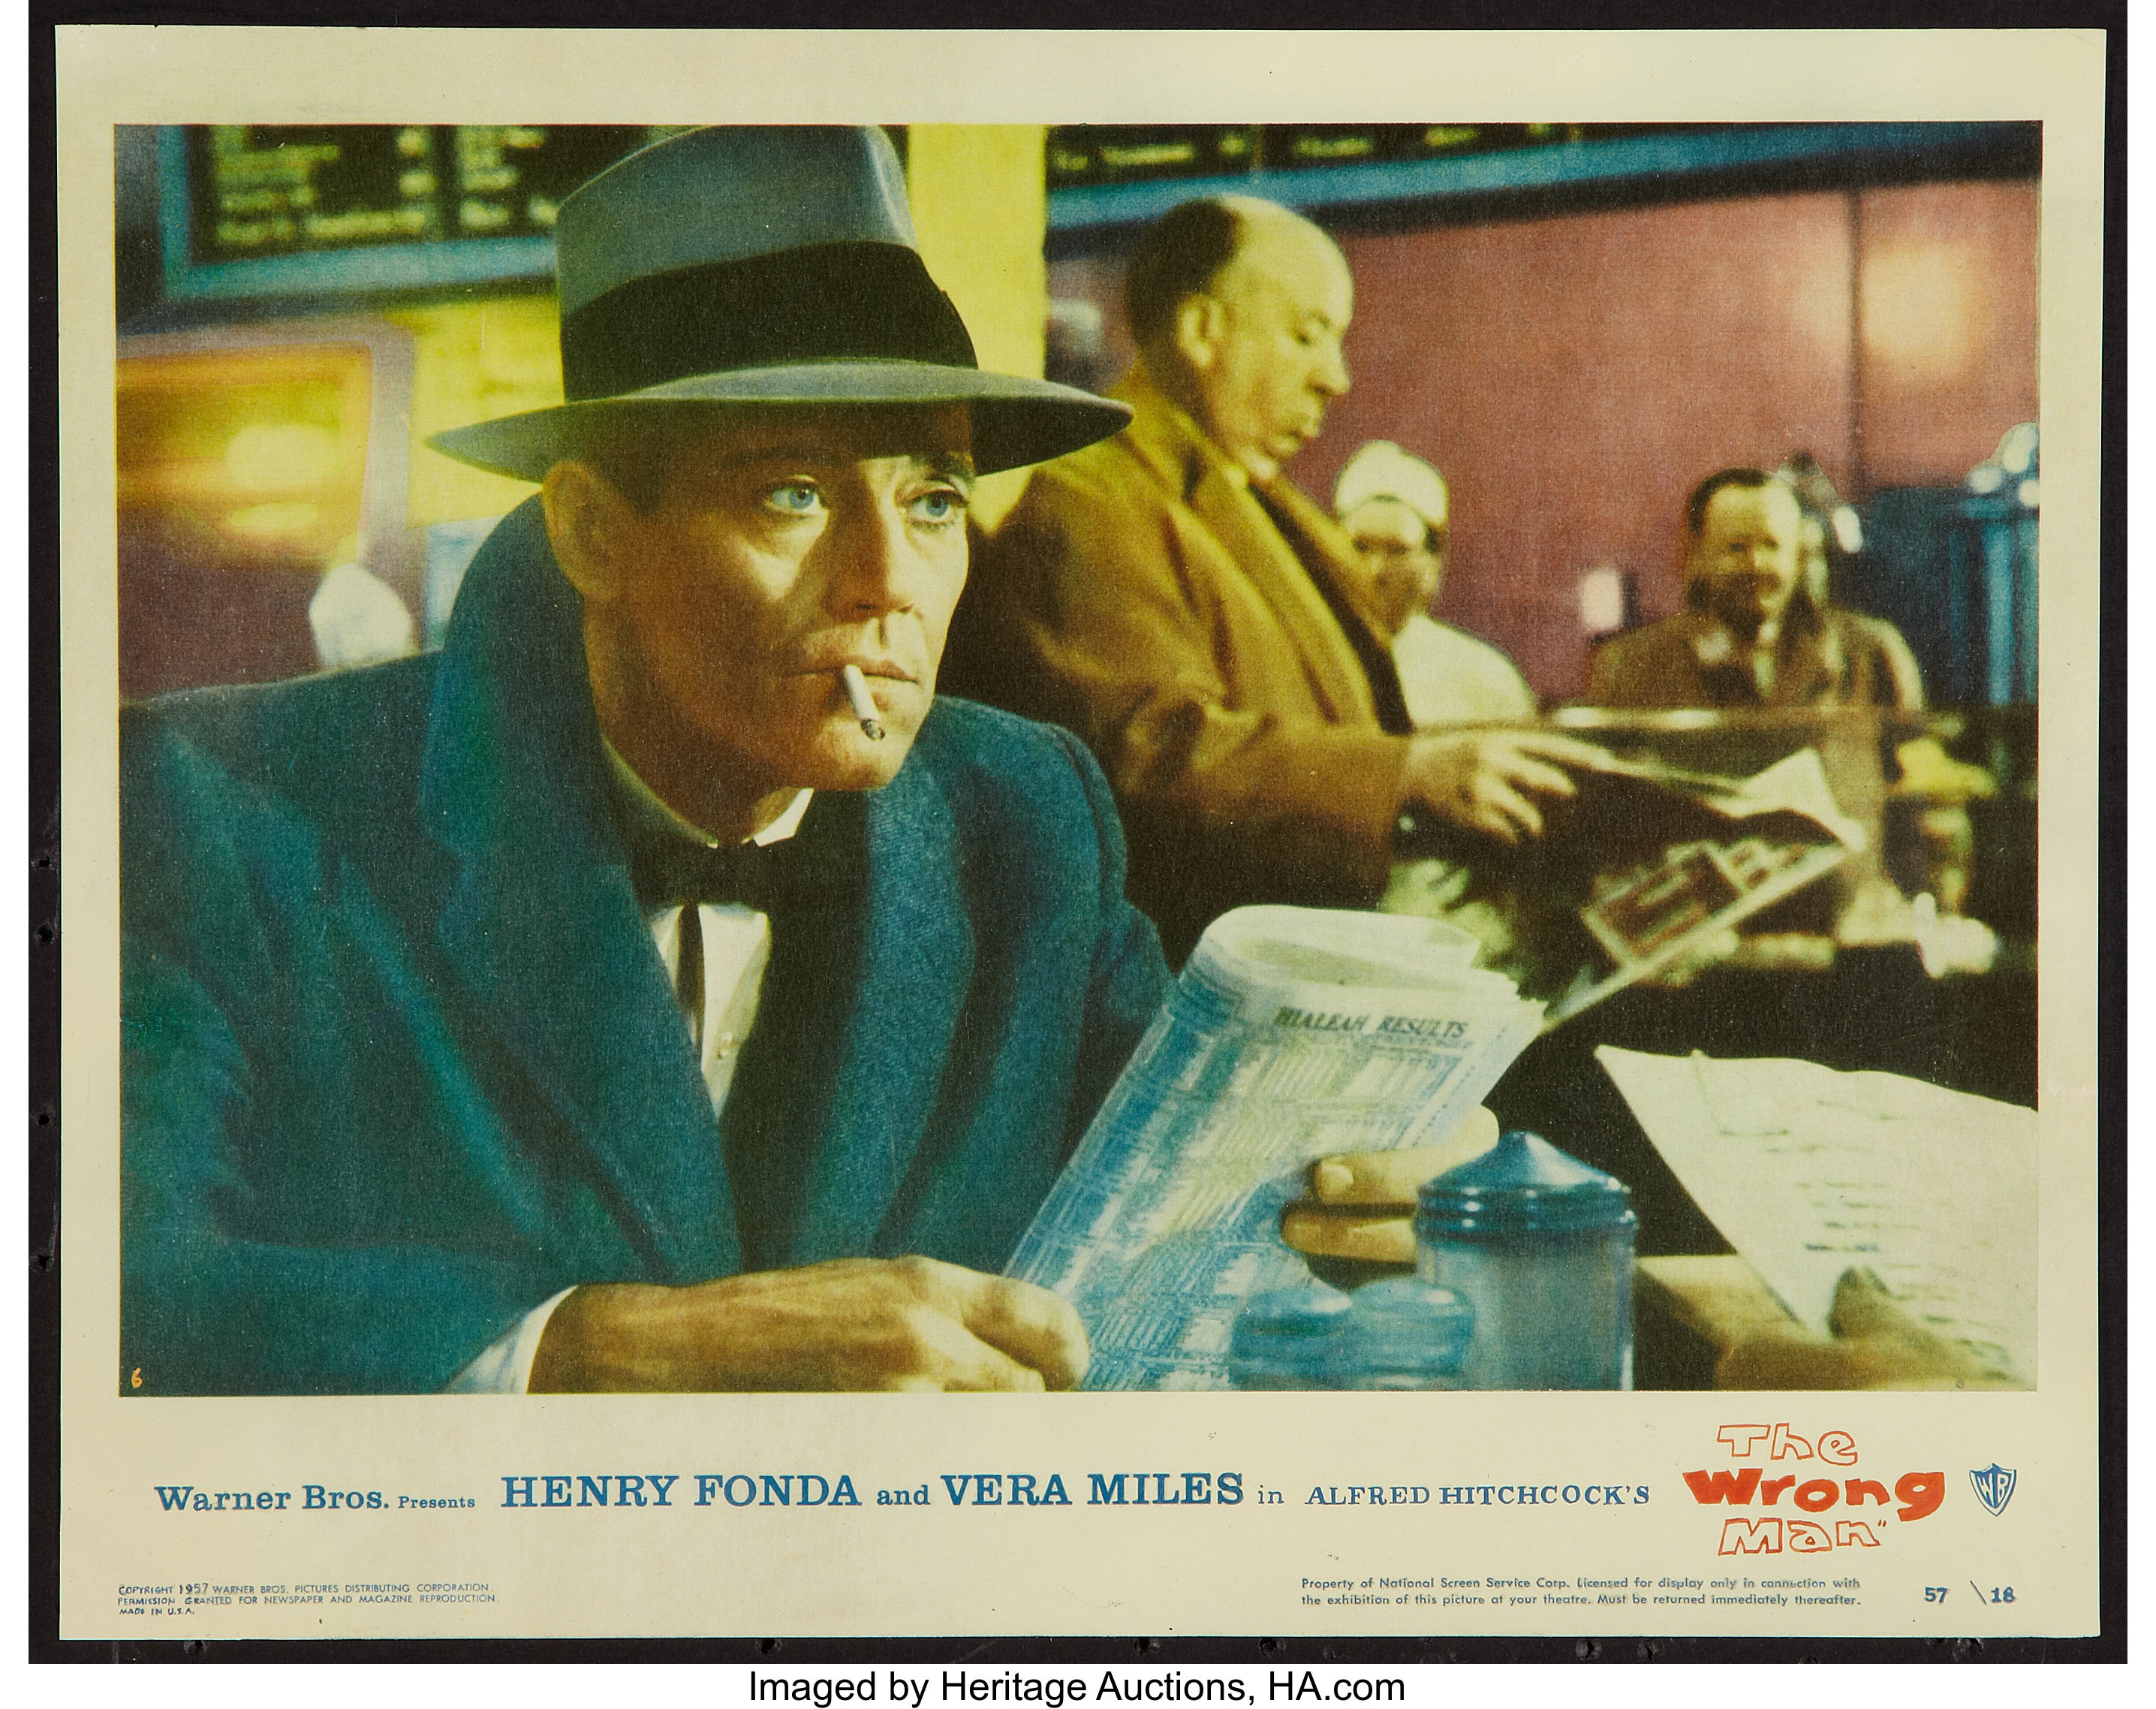 Hitchcock/'s The wrong man Henry Fonda movie poster